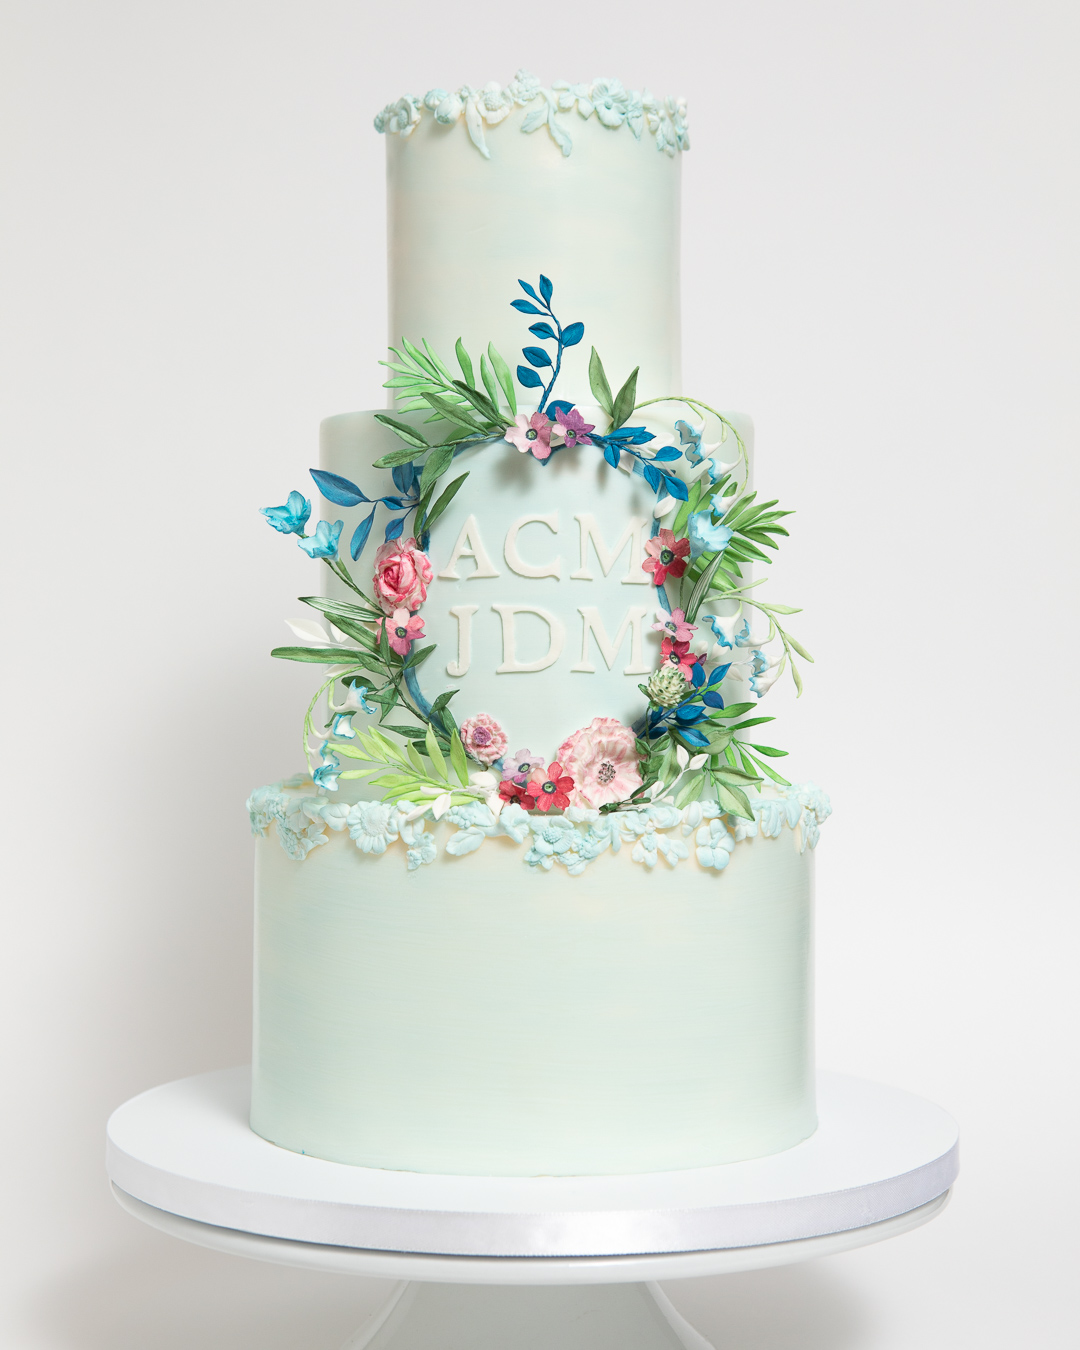 Monogram Shield Wedding Cake with Watercolor Sugar Flowers, Photo by Samuel Sachs Morgan